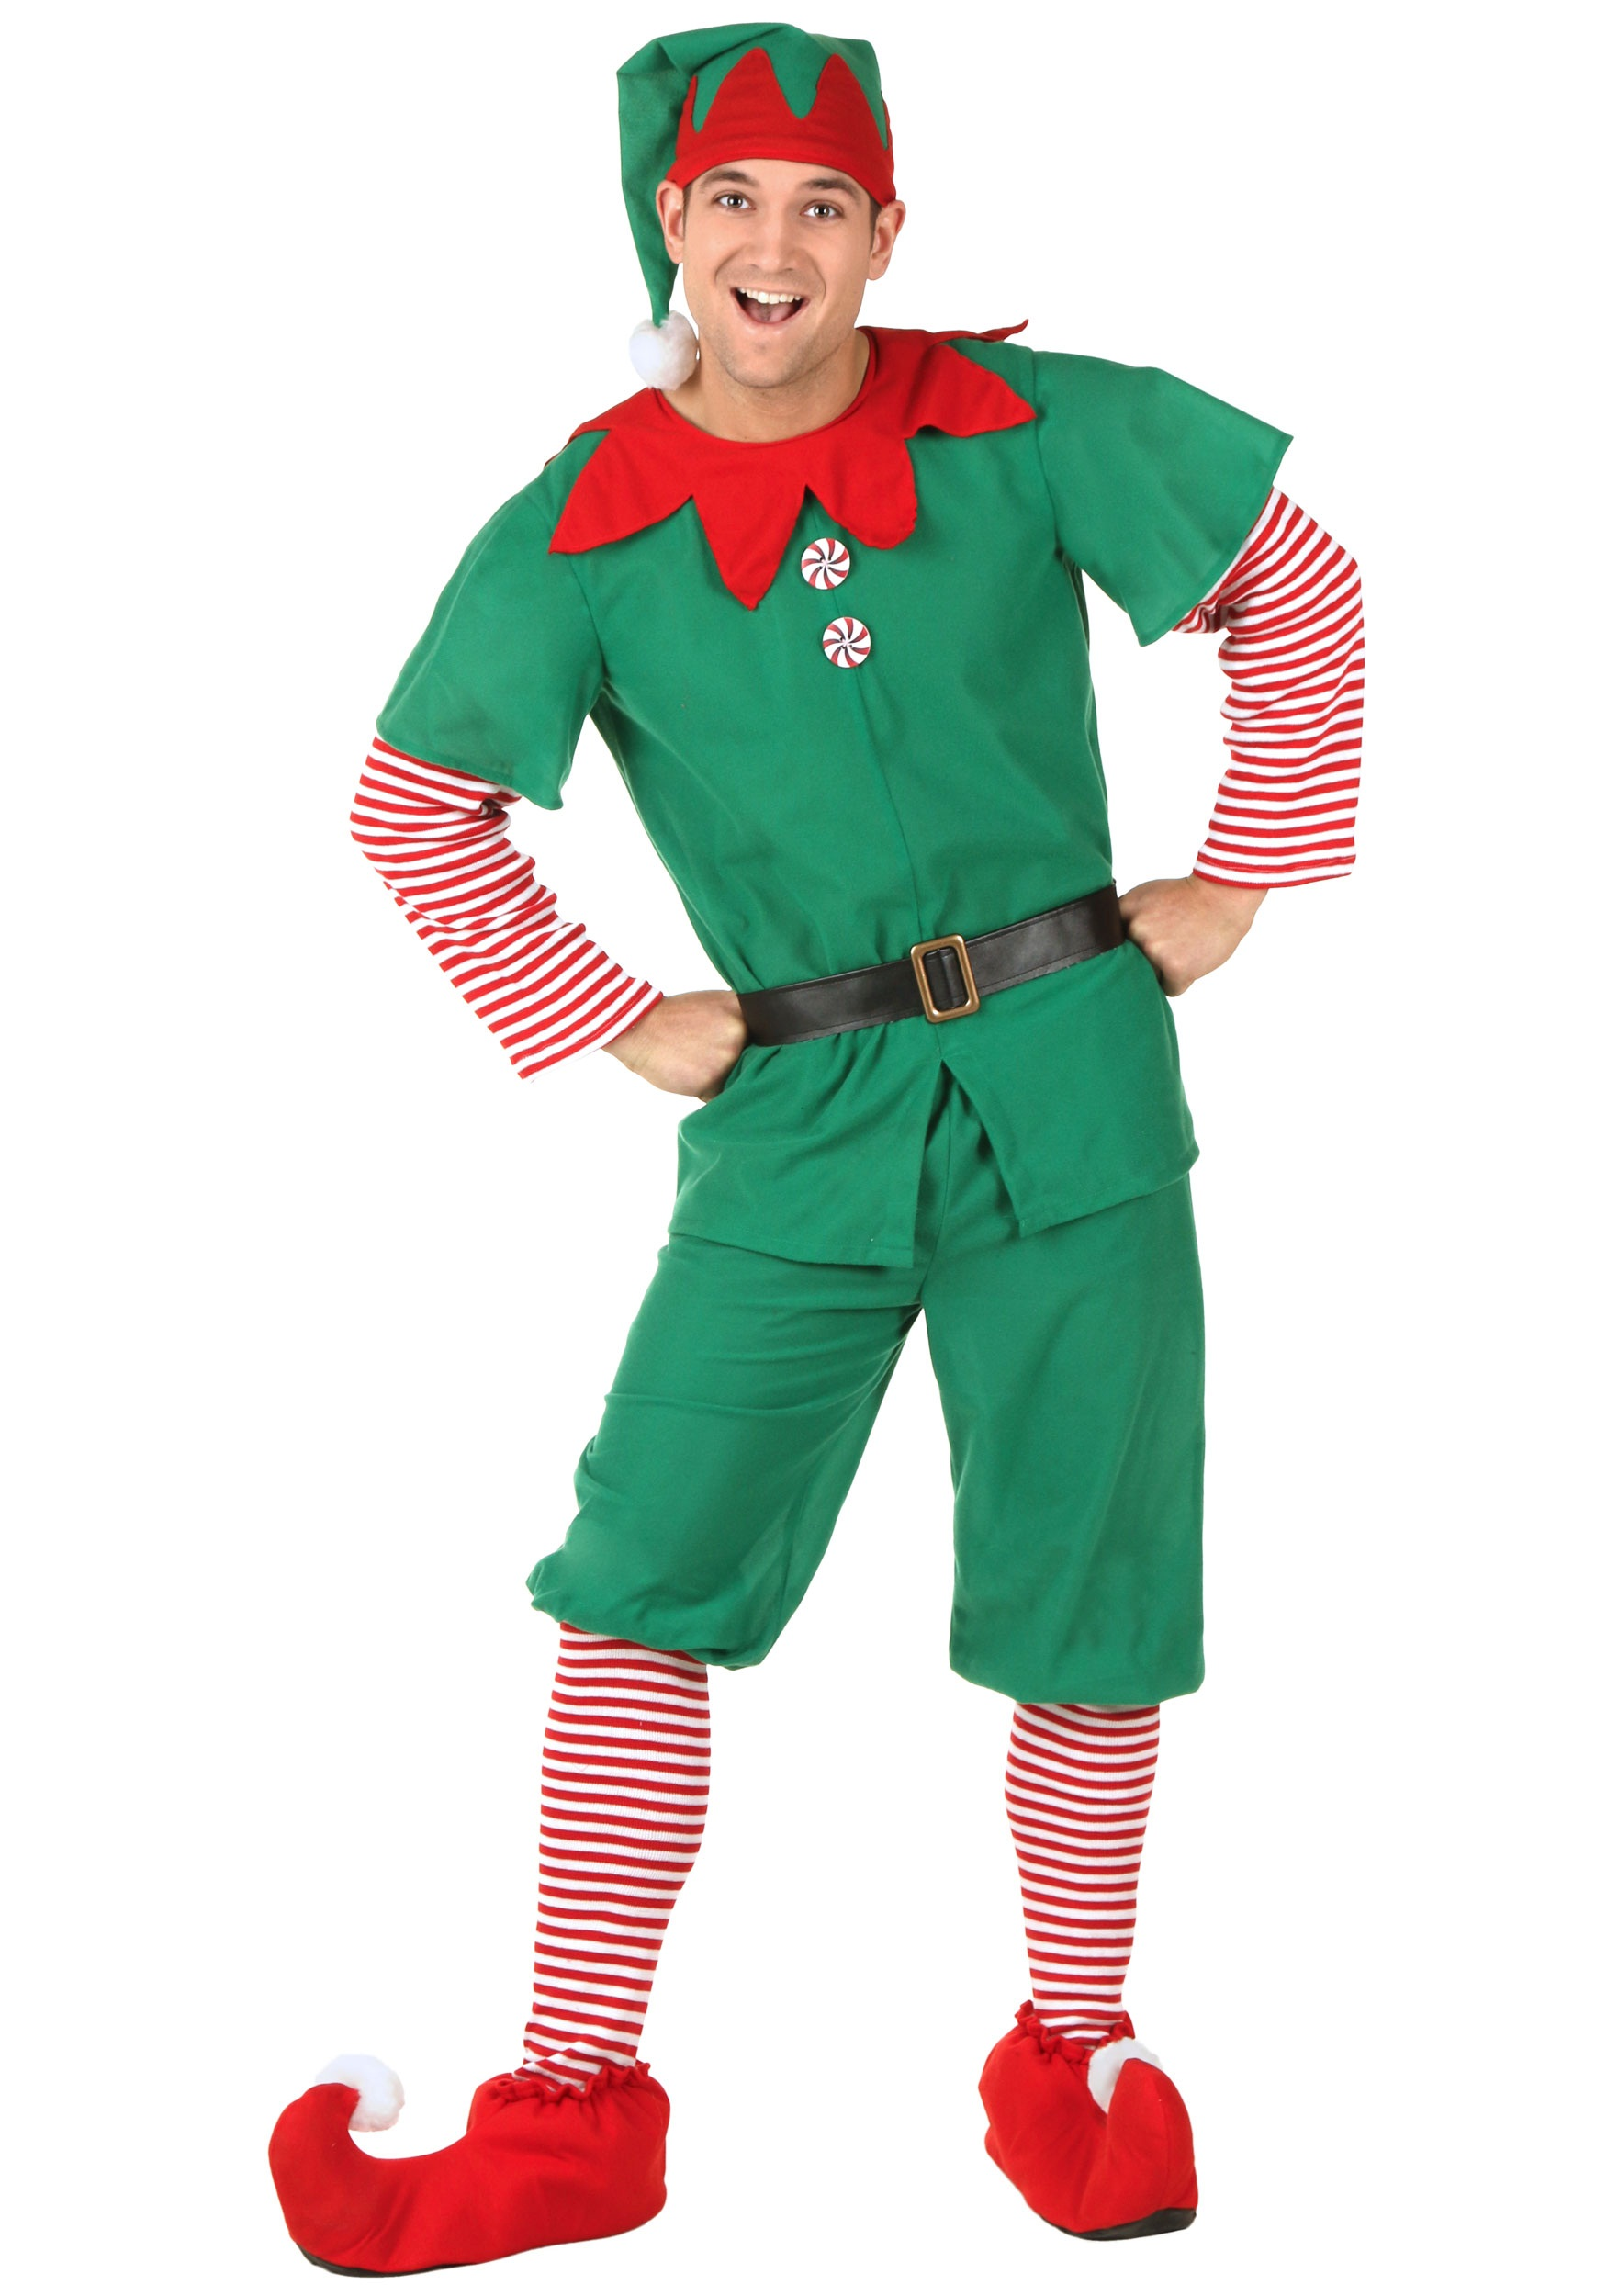 Christmas Costumes   Santa Claus Suits - Halloween Costumes 5464c8068